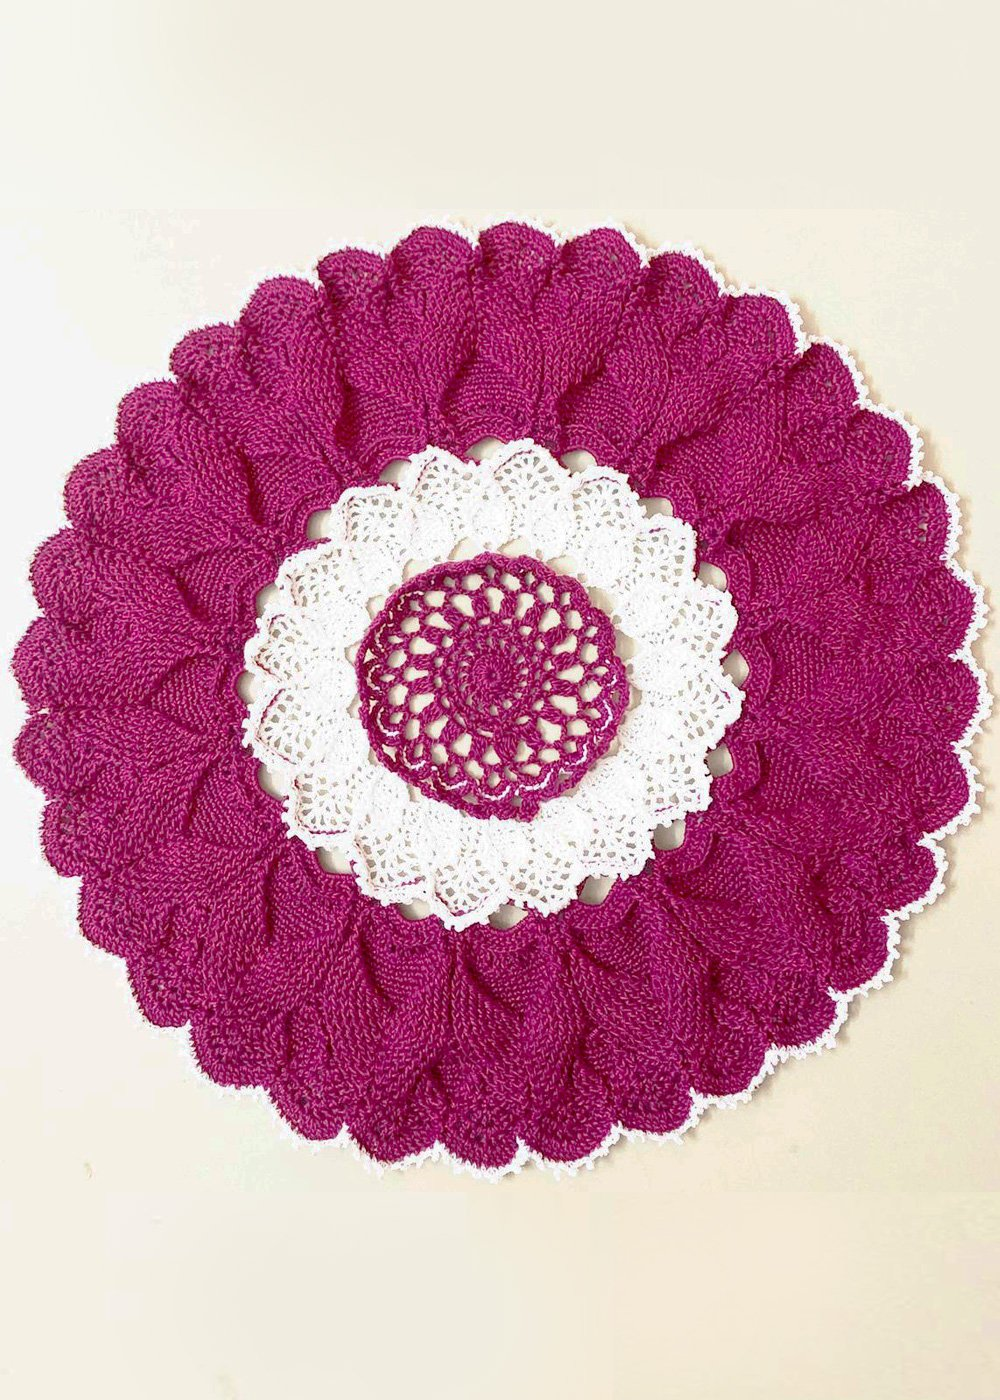 Hand Crocheted Doily Placemat